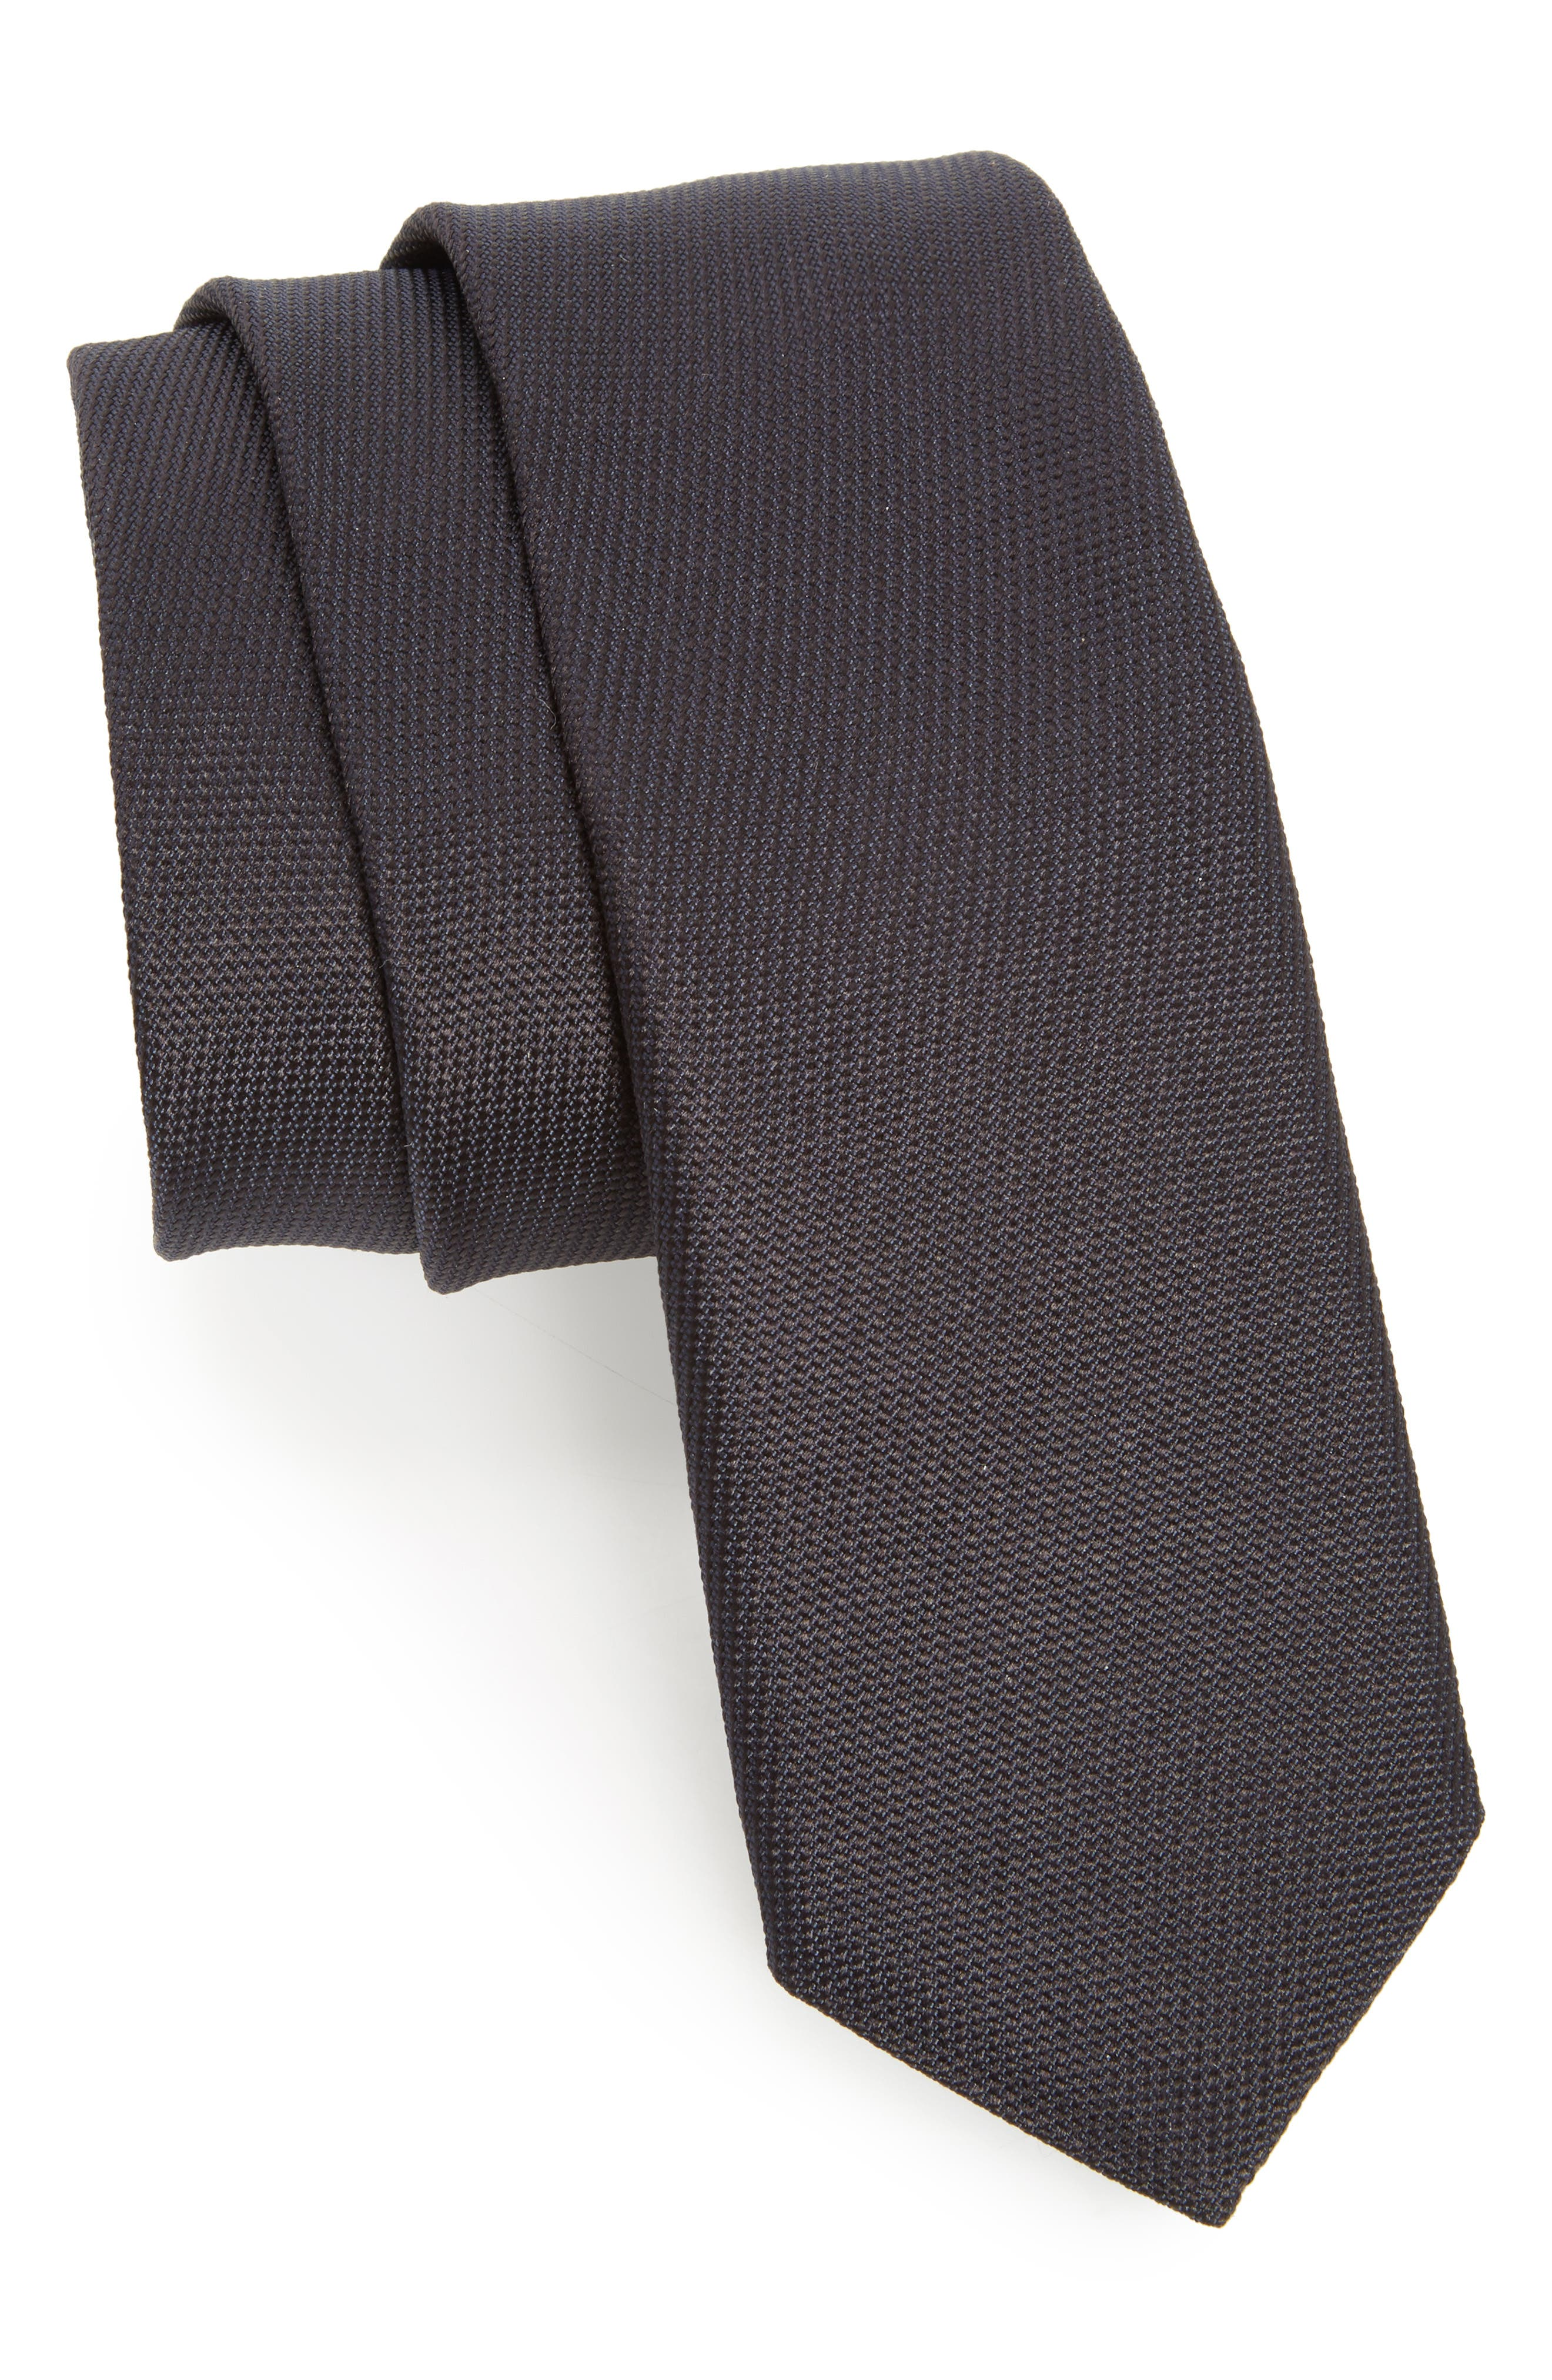 Nordstrom x BOSS Silk Tie,                             Main thumbnail 1, color,                             402